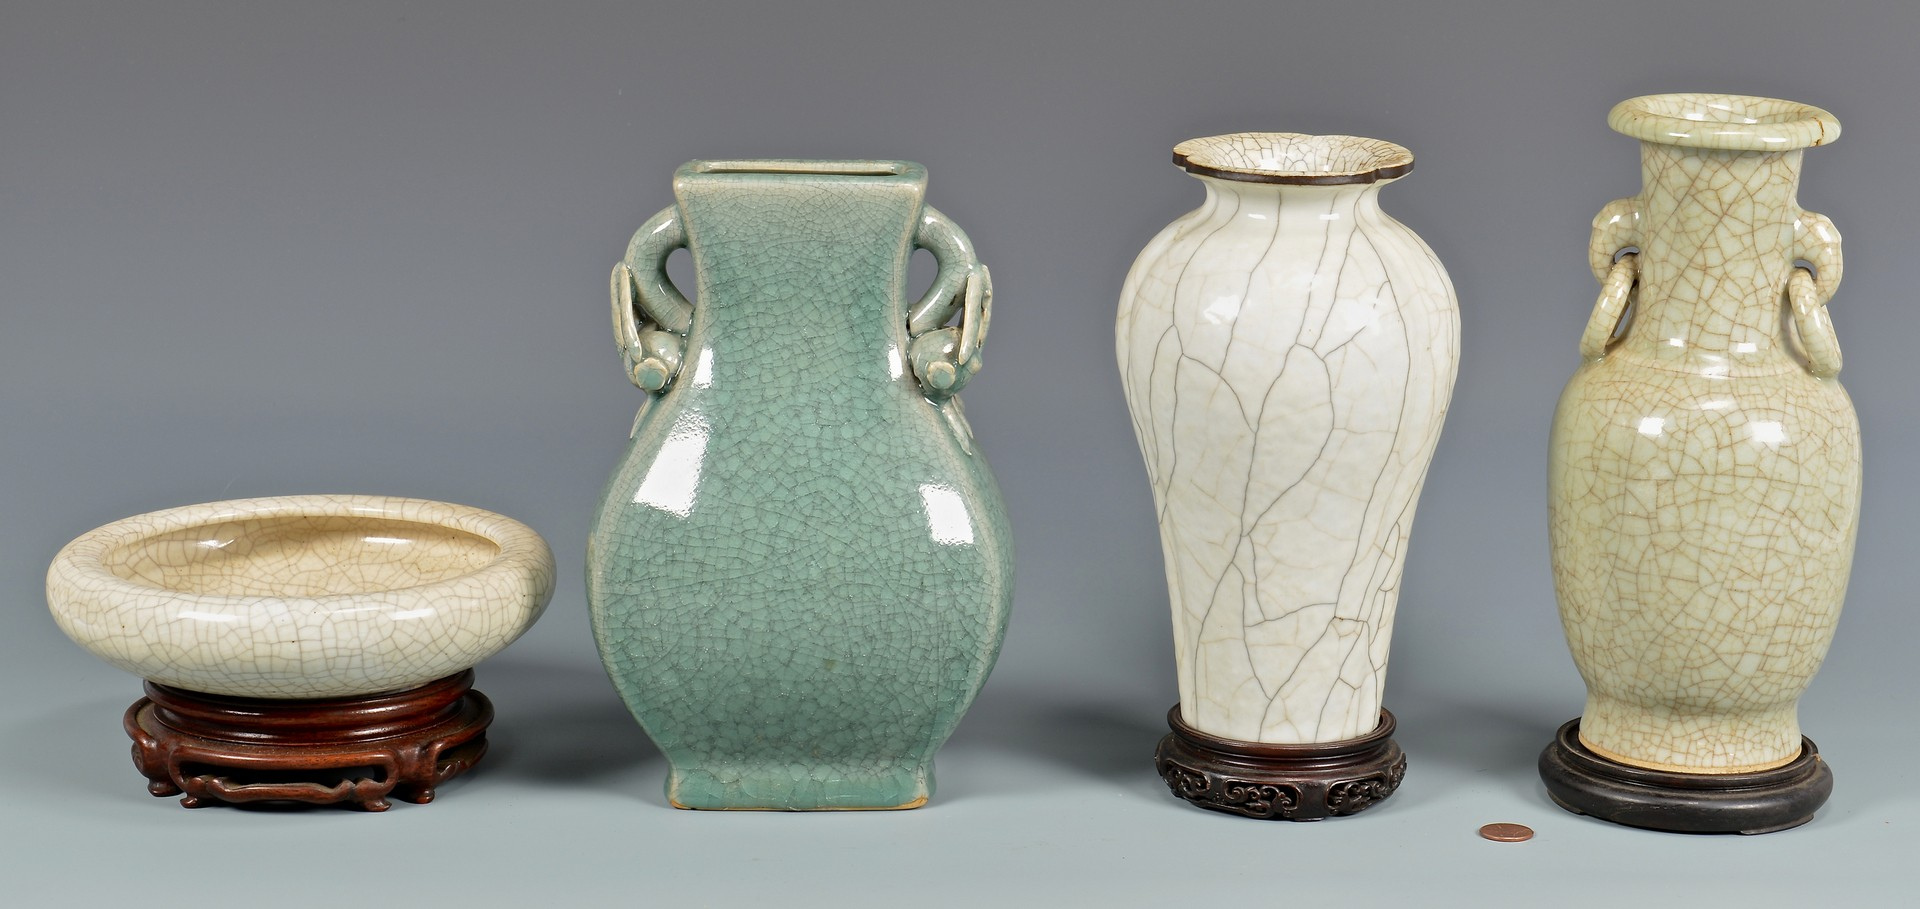 Lot 4010129: 5 Chinese Pottery Items, 4 w/ Song Style Crackle Glaze